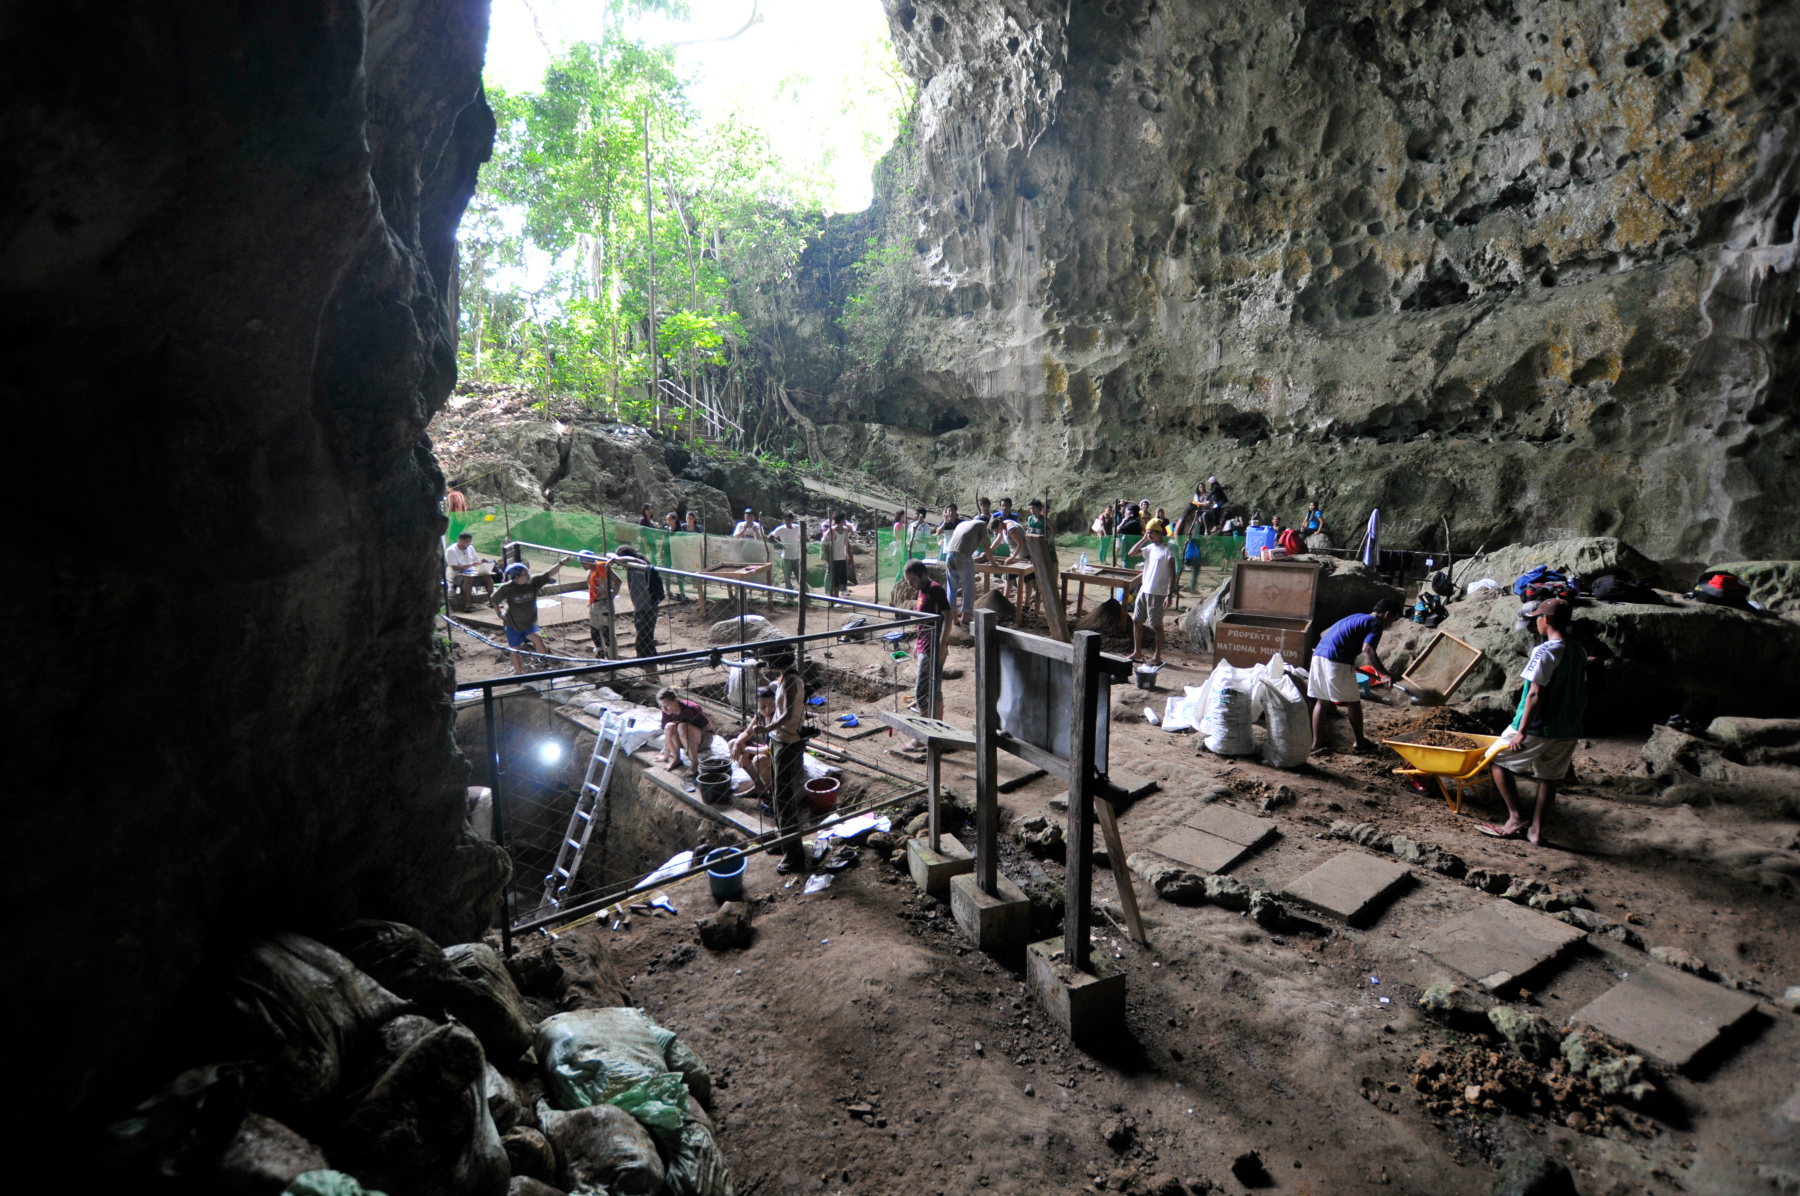 Potential new species of human found in cave in Philippines